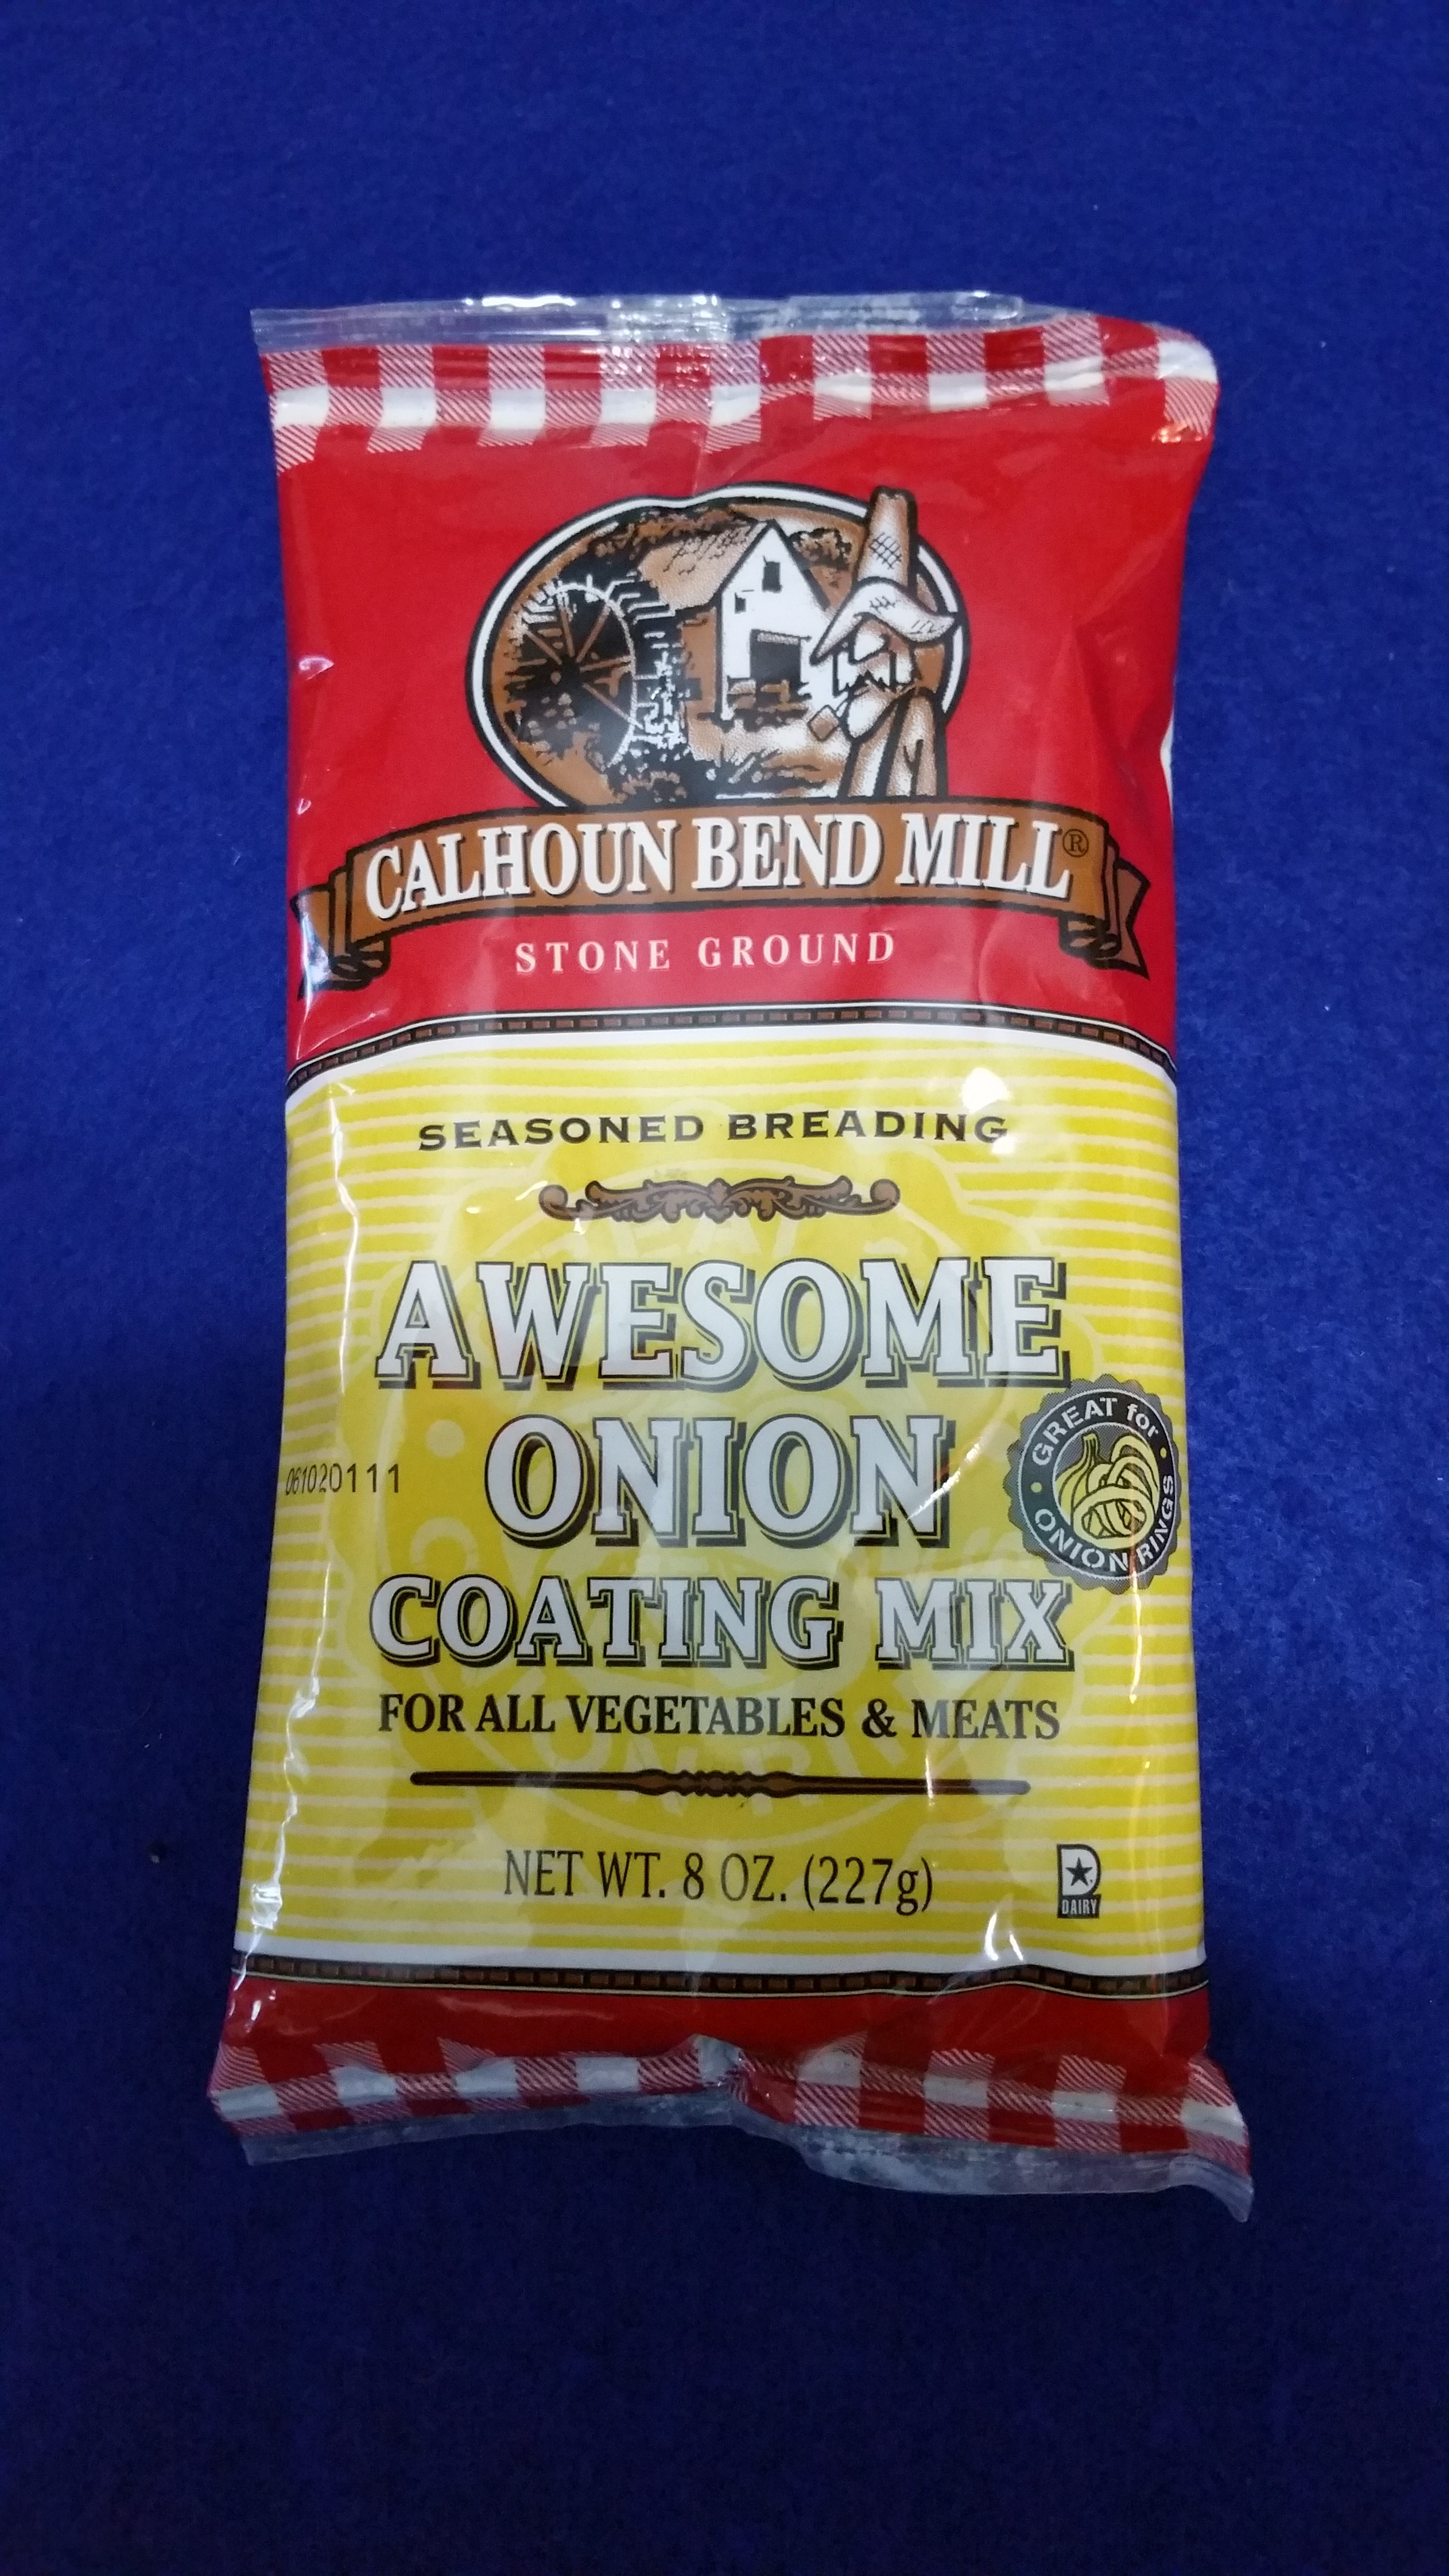 Awesome Onion Coating Mix